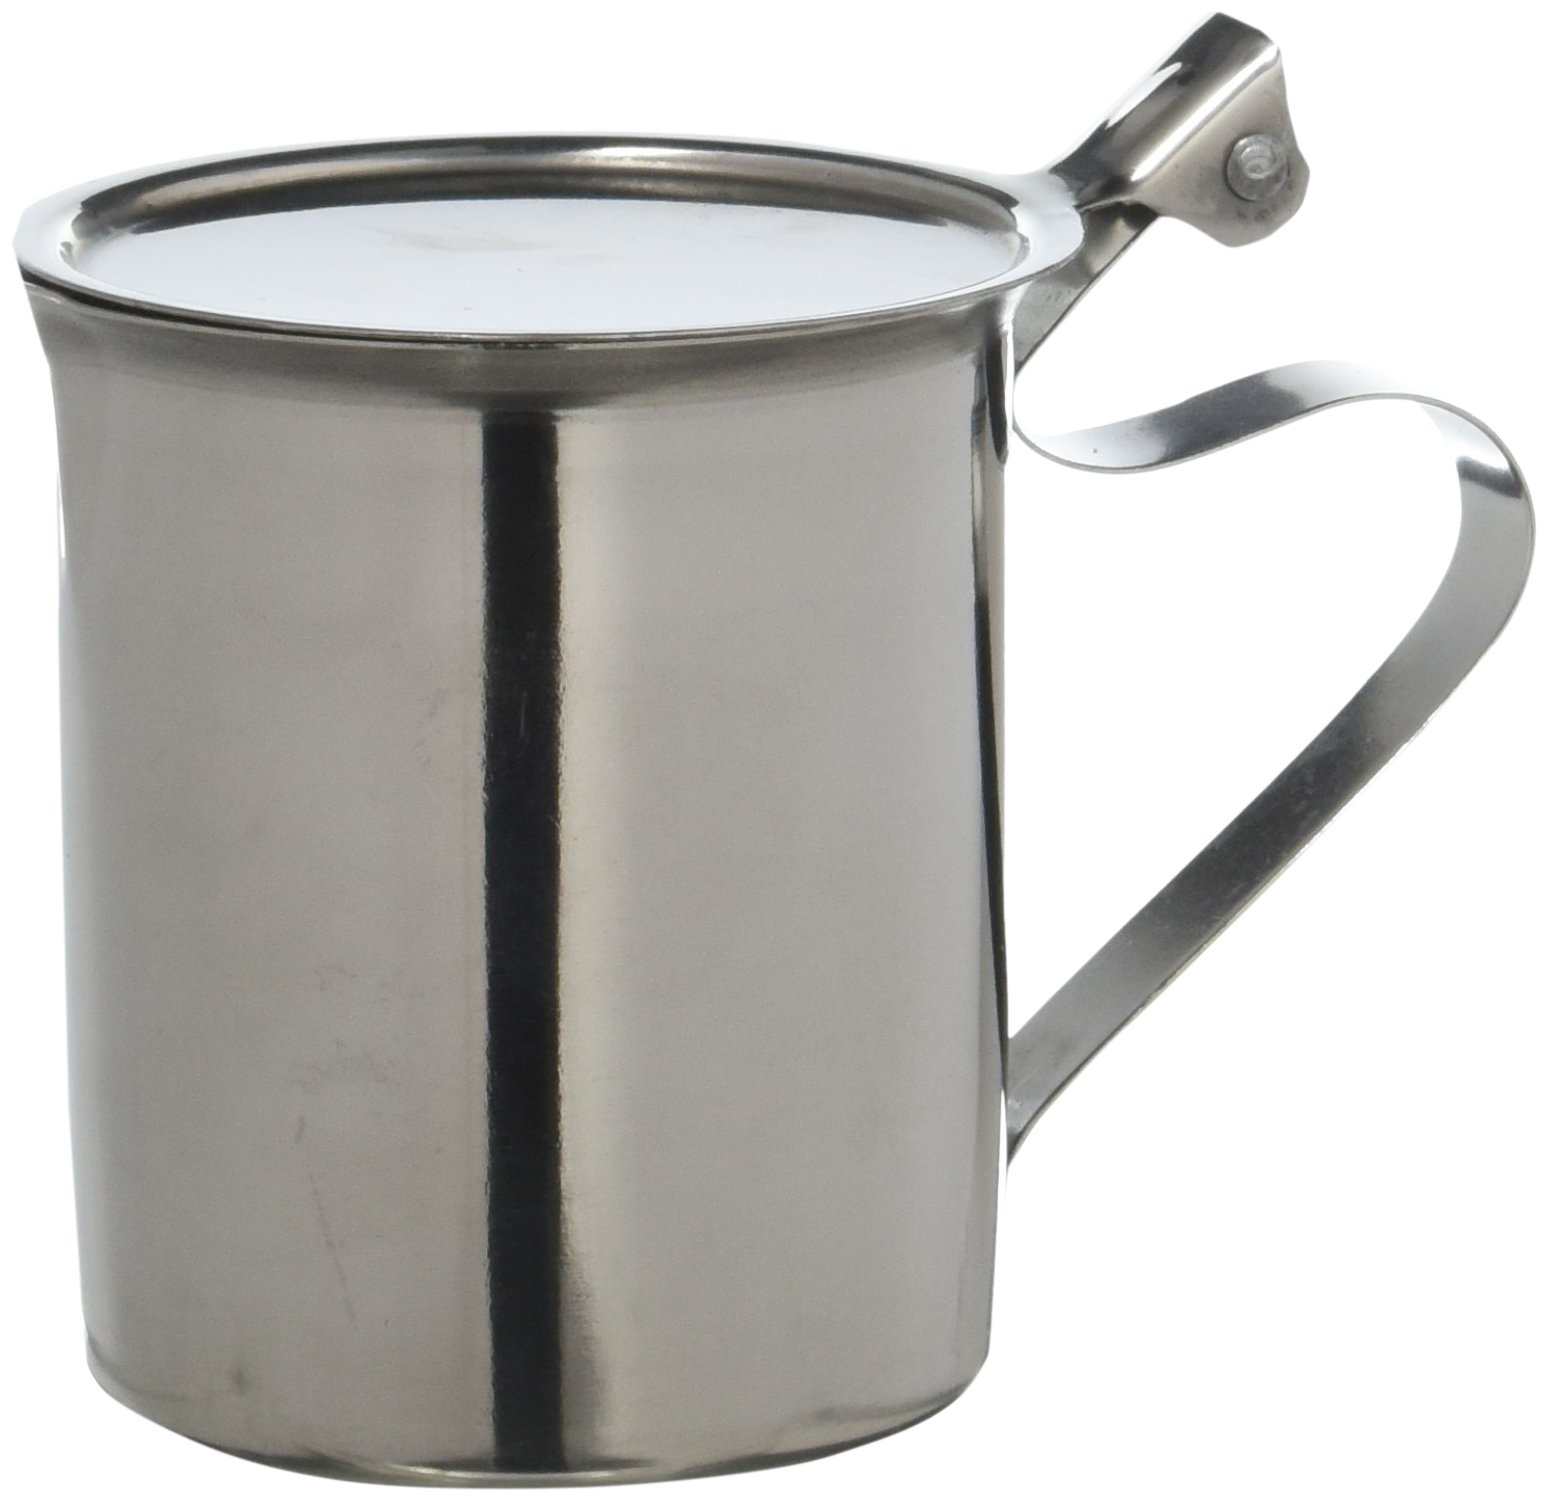 Winco SCT-10F Stainless Steel Stackable Creamer with Flat Cover, 10-Ounce